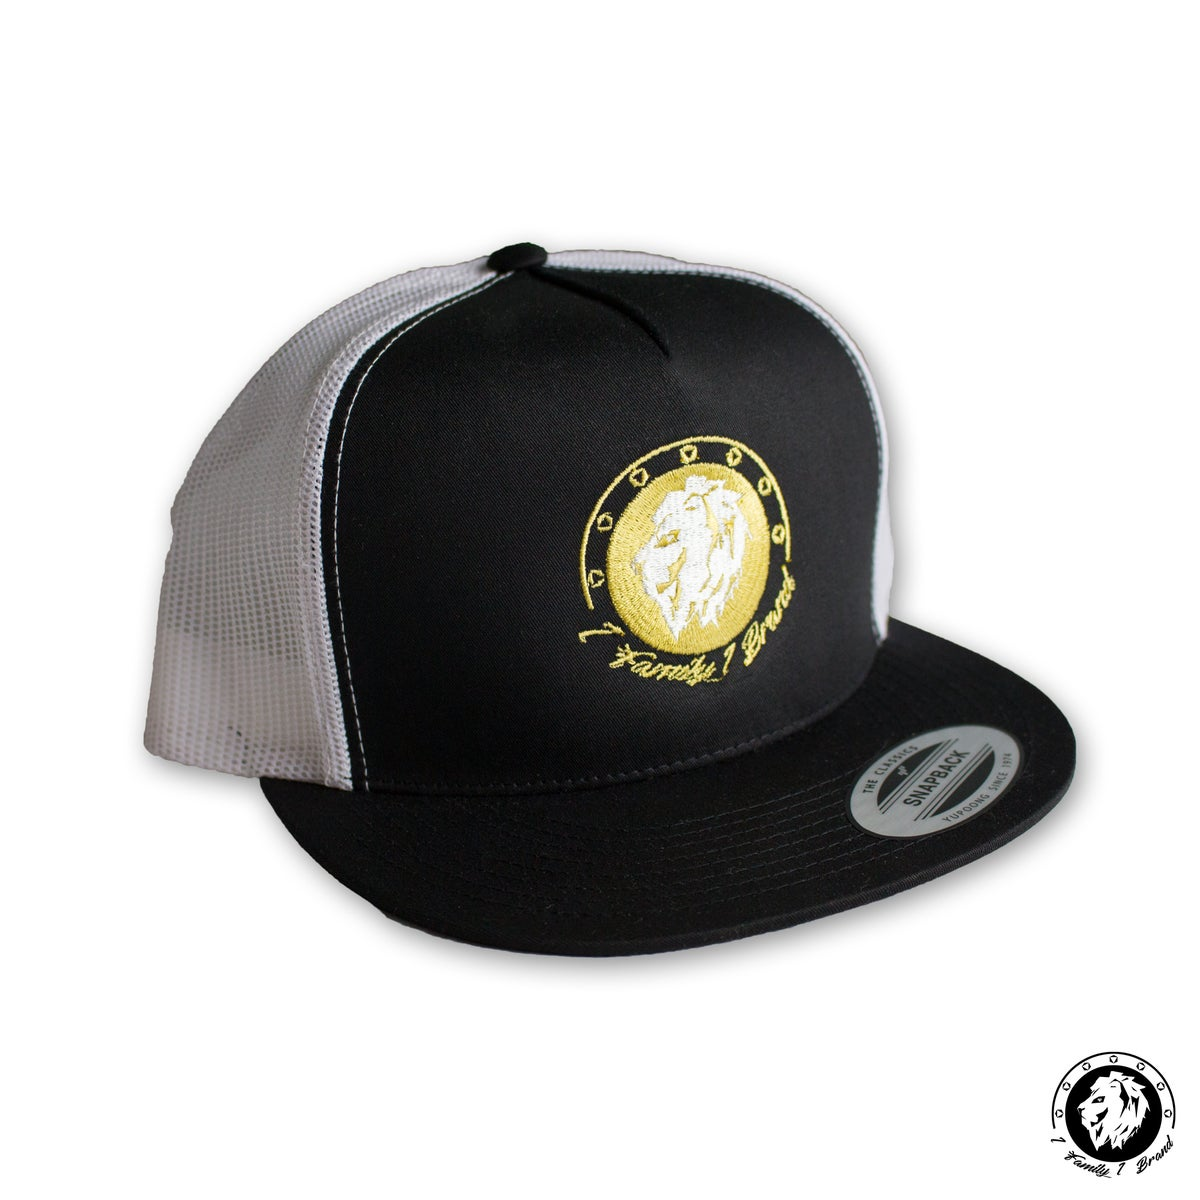 Image of Trucker Snapback (Black/White/Gold)